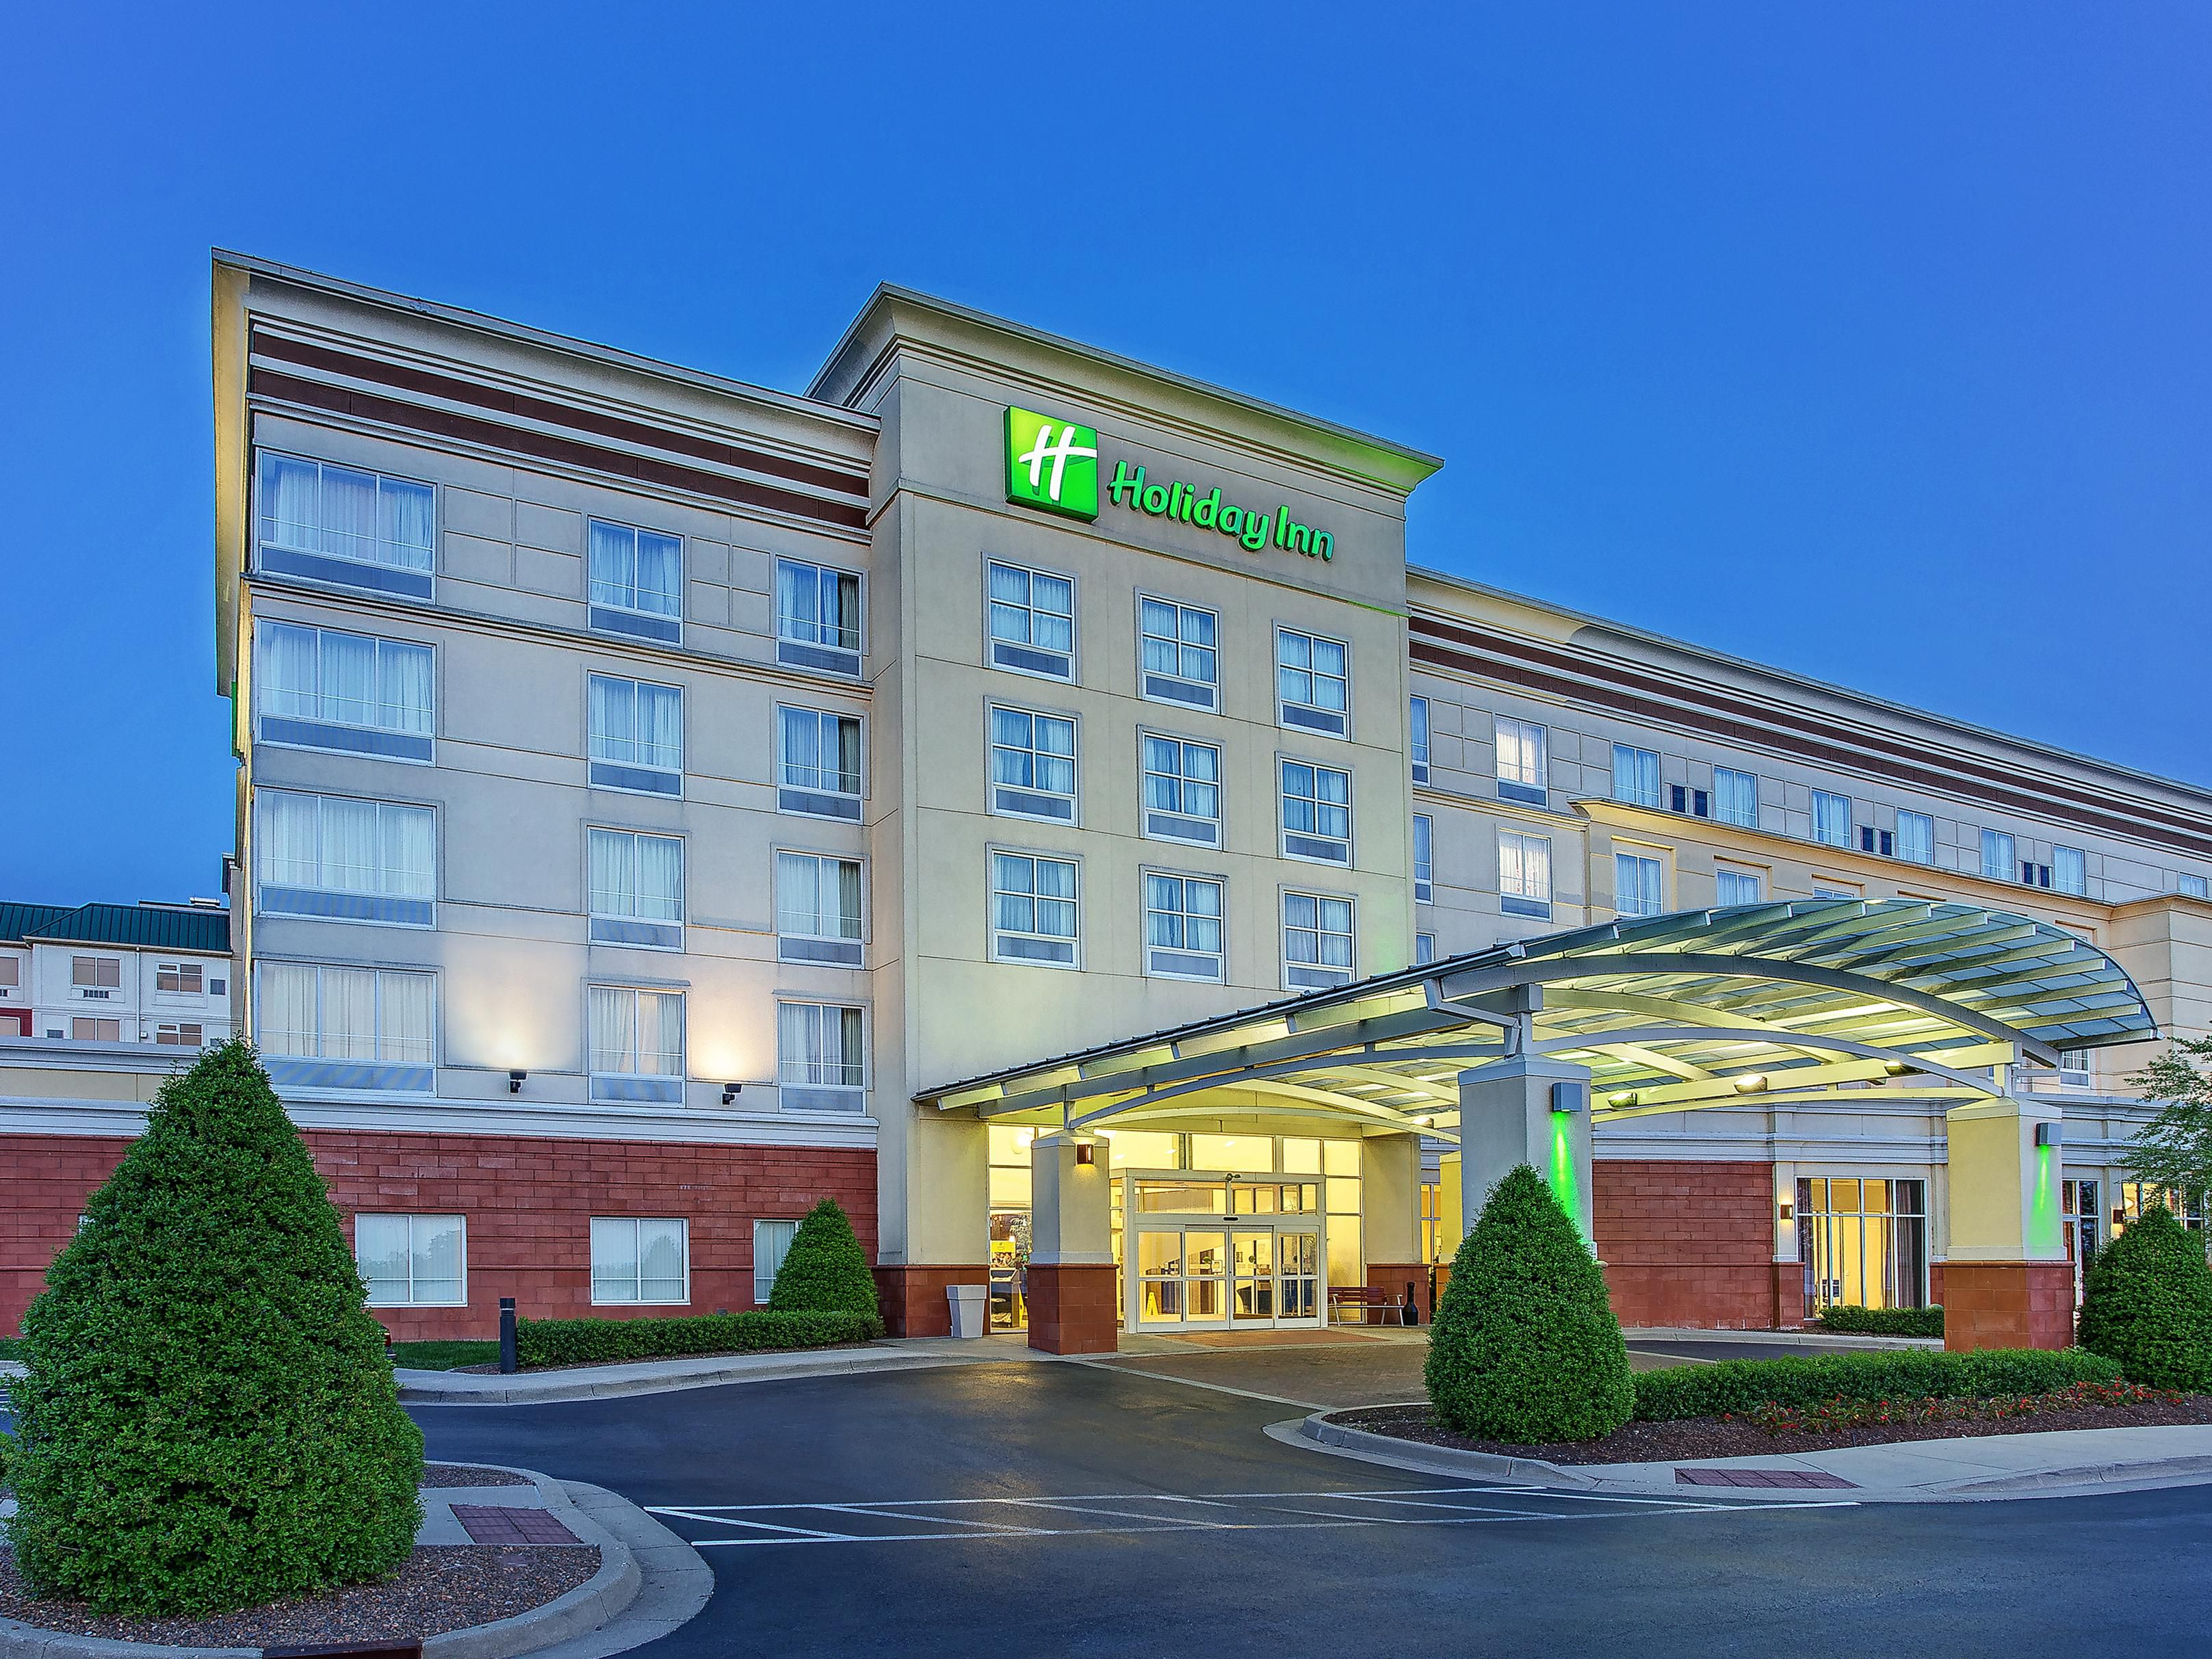 hotels in louisville ky near yum center holiday inn louisville airport fair expo holiday inn louisville airport fair expo